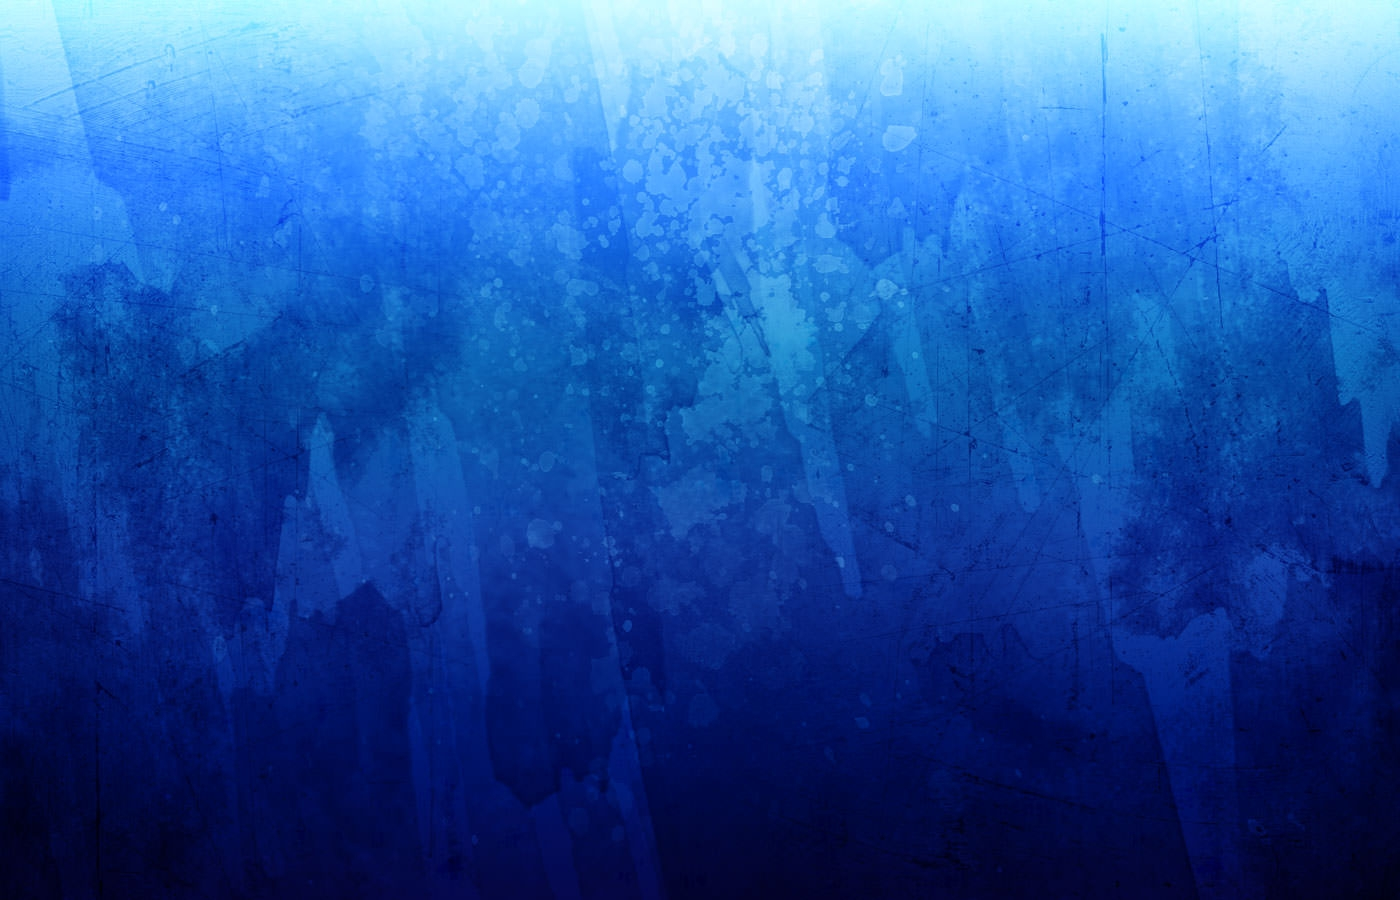 Dark Blue Watercolor Grunge Backgrounds